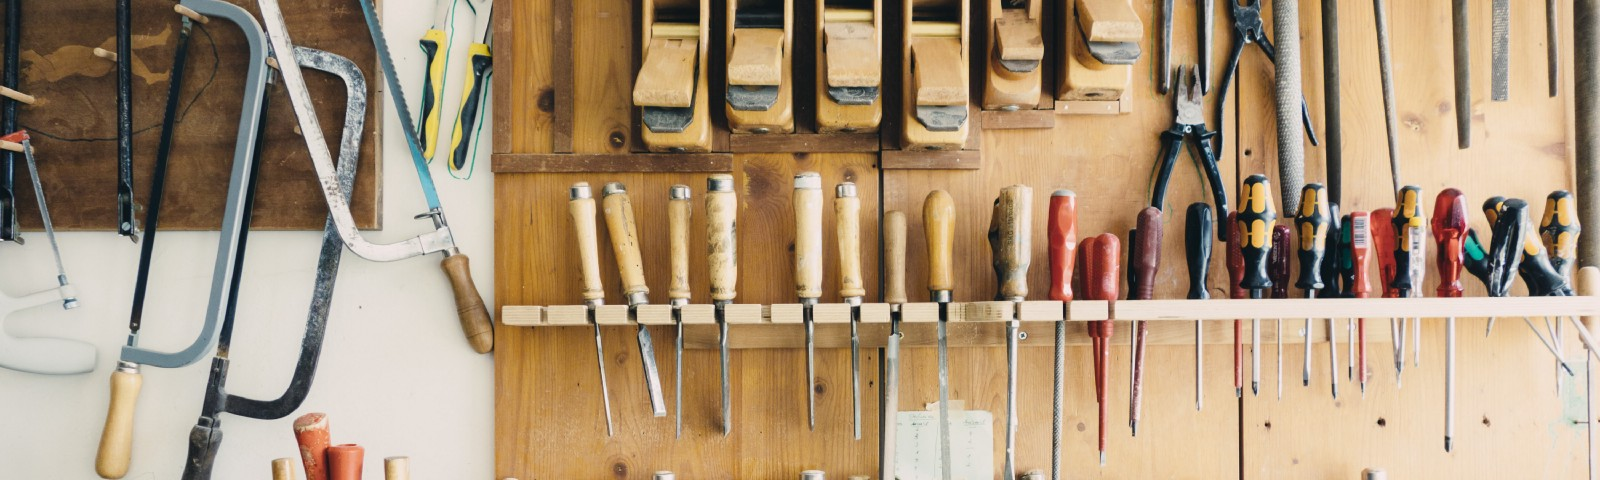 Photo of woodworking tools on wall by Barn Images on James Goydos Rutgers MD post on woodworking